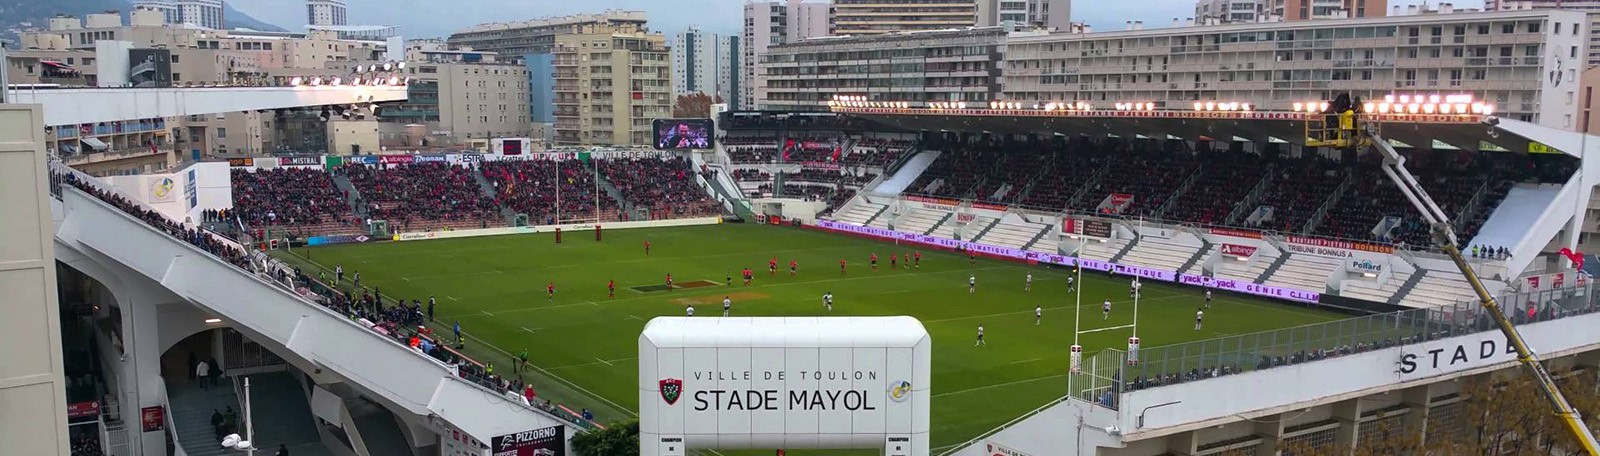 Parking Toulon Stade Mayol